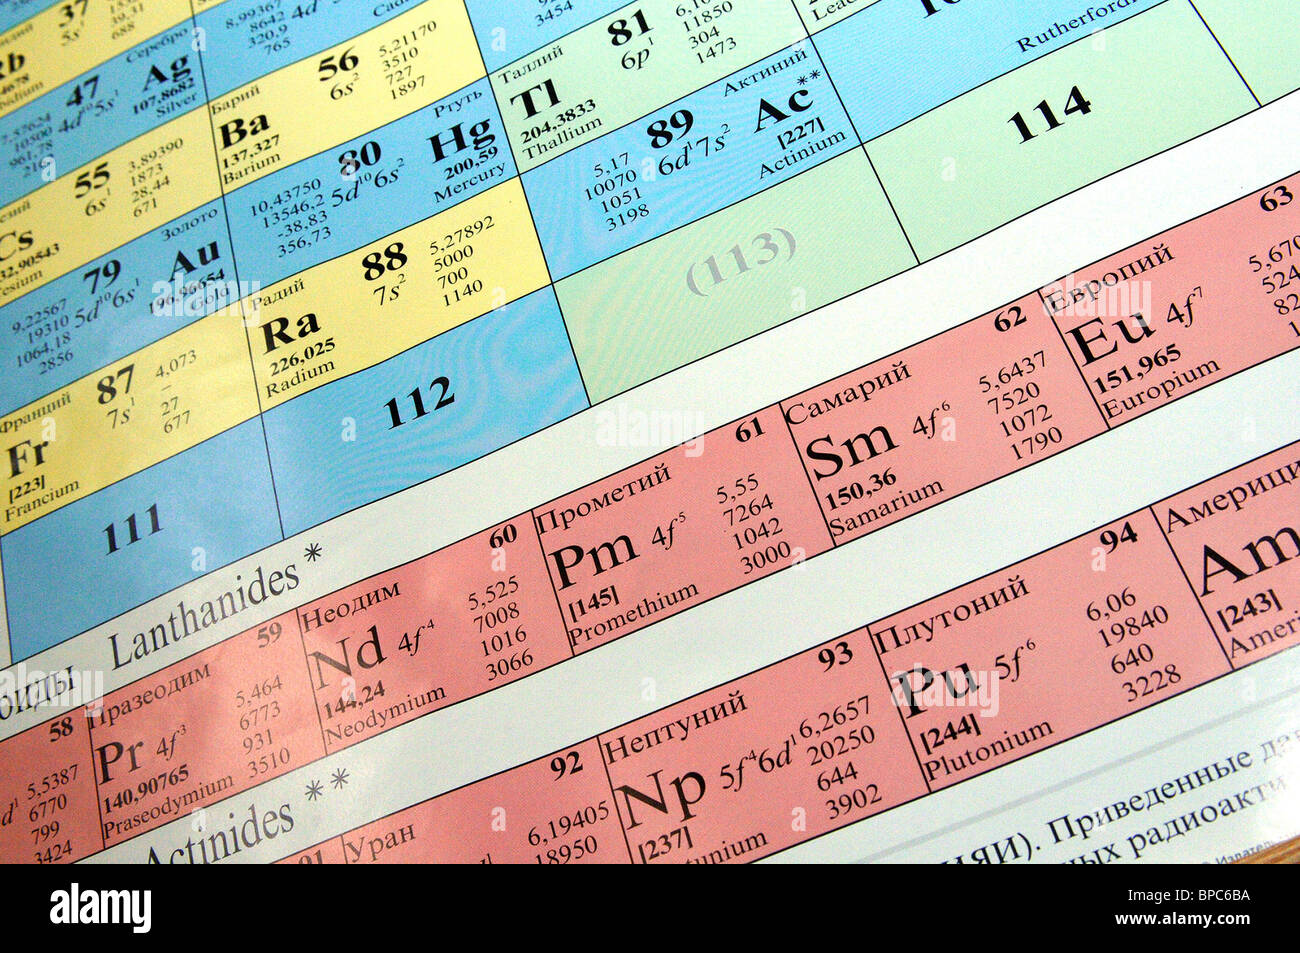 To periodic table gallery periodic table images discovery of new elements to be added to periodic table confirmed discovery of new elements to gamestrikefo Images